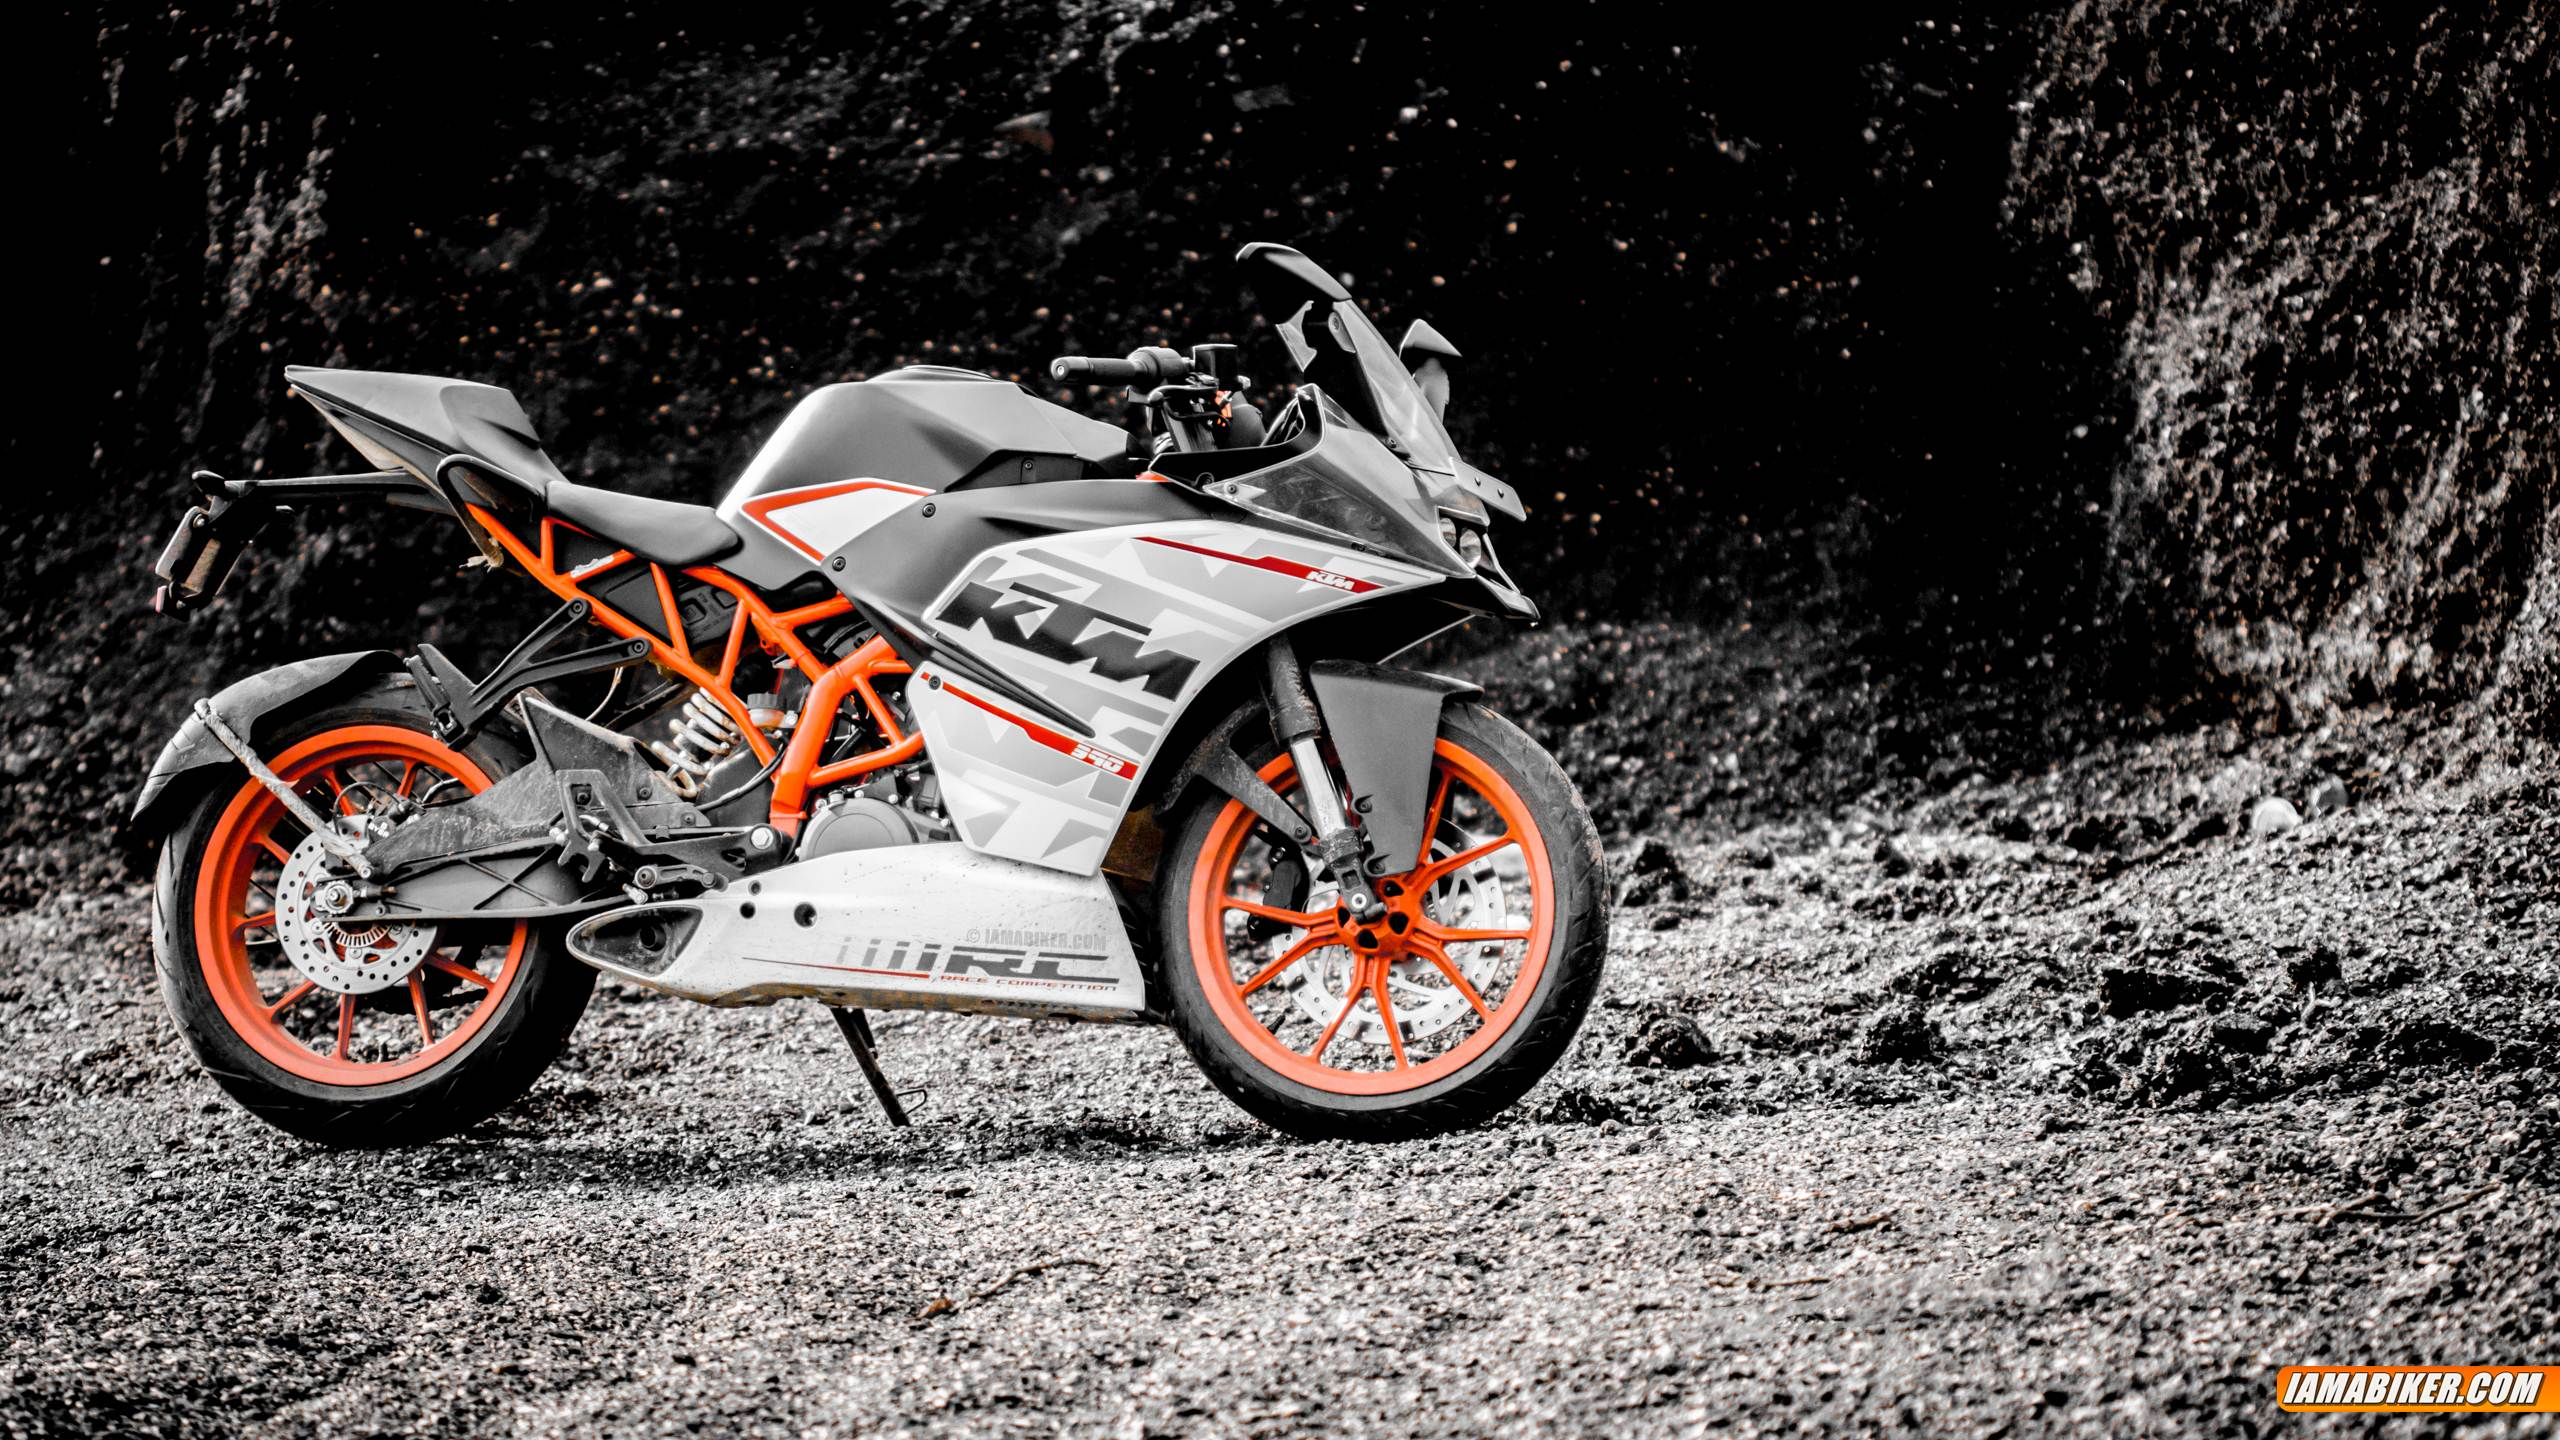 Ktm motorcycles hd wallpapers free wallaper downloads ktm sport - Ktm Rc 390 Wallpapers 2